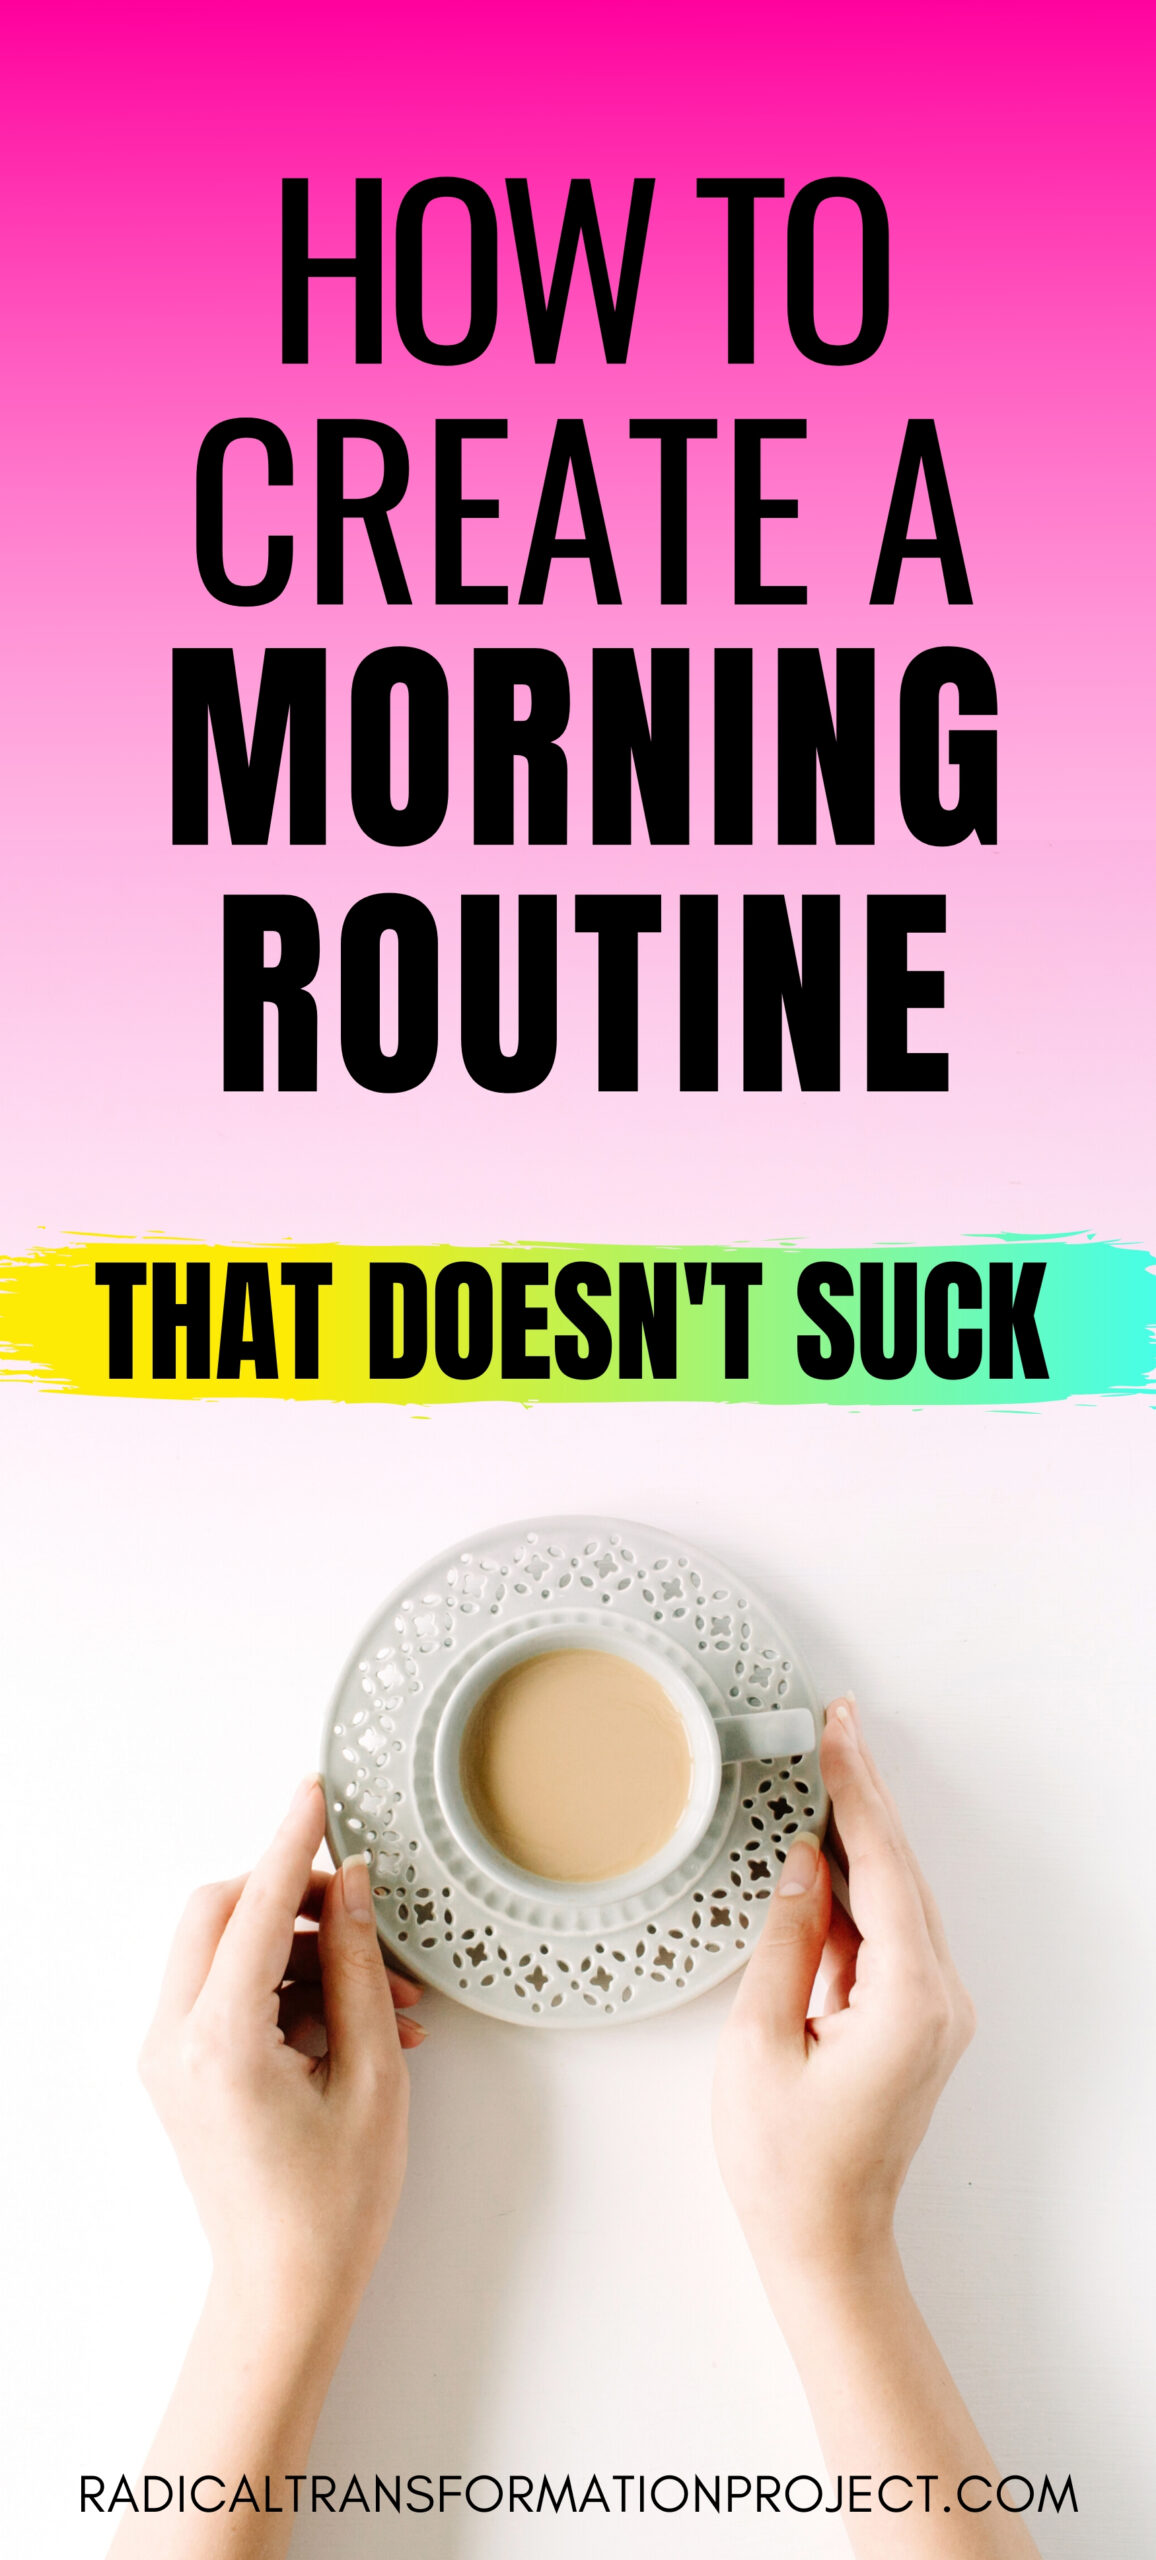 how to create a morning routine that doesn't suck